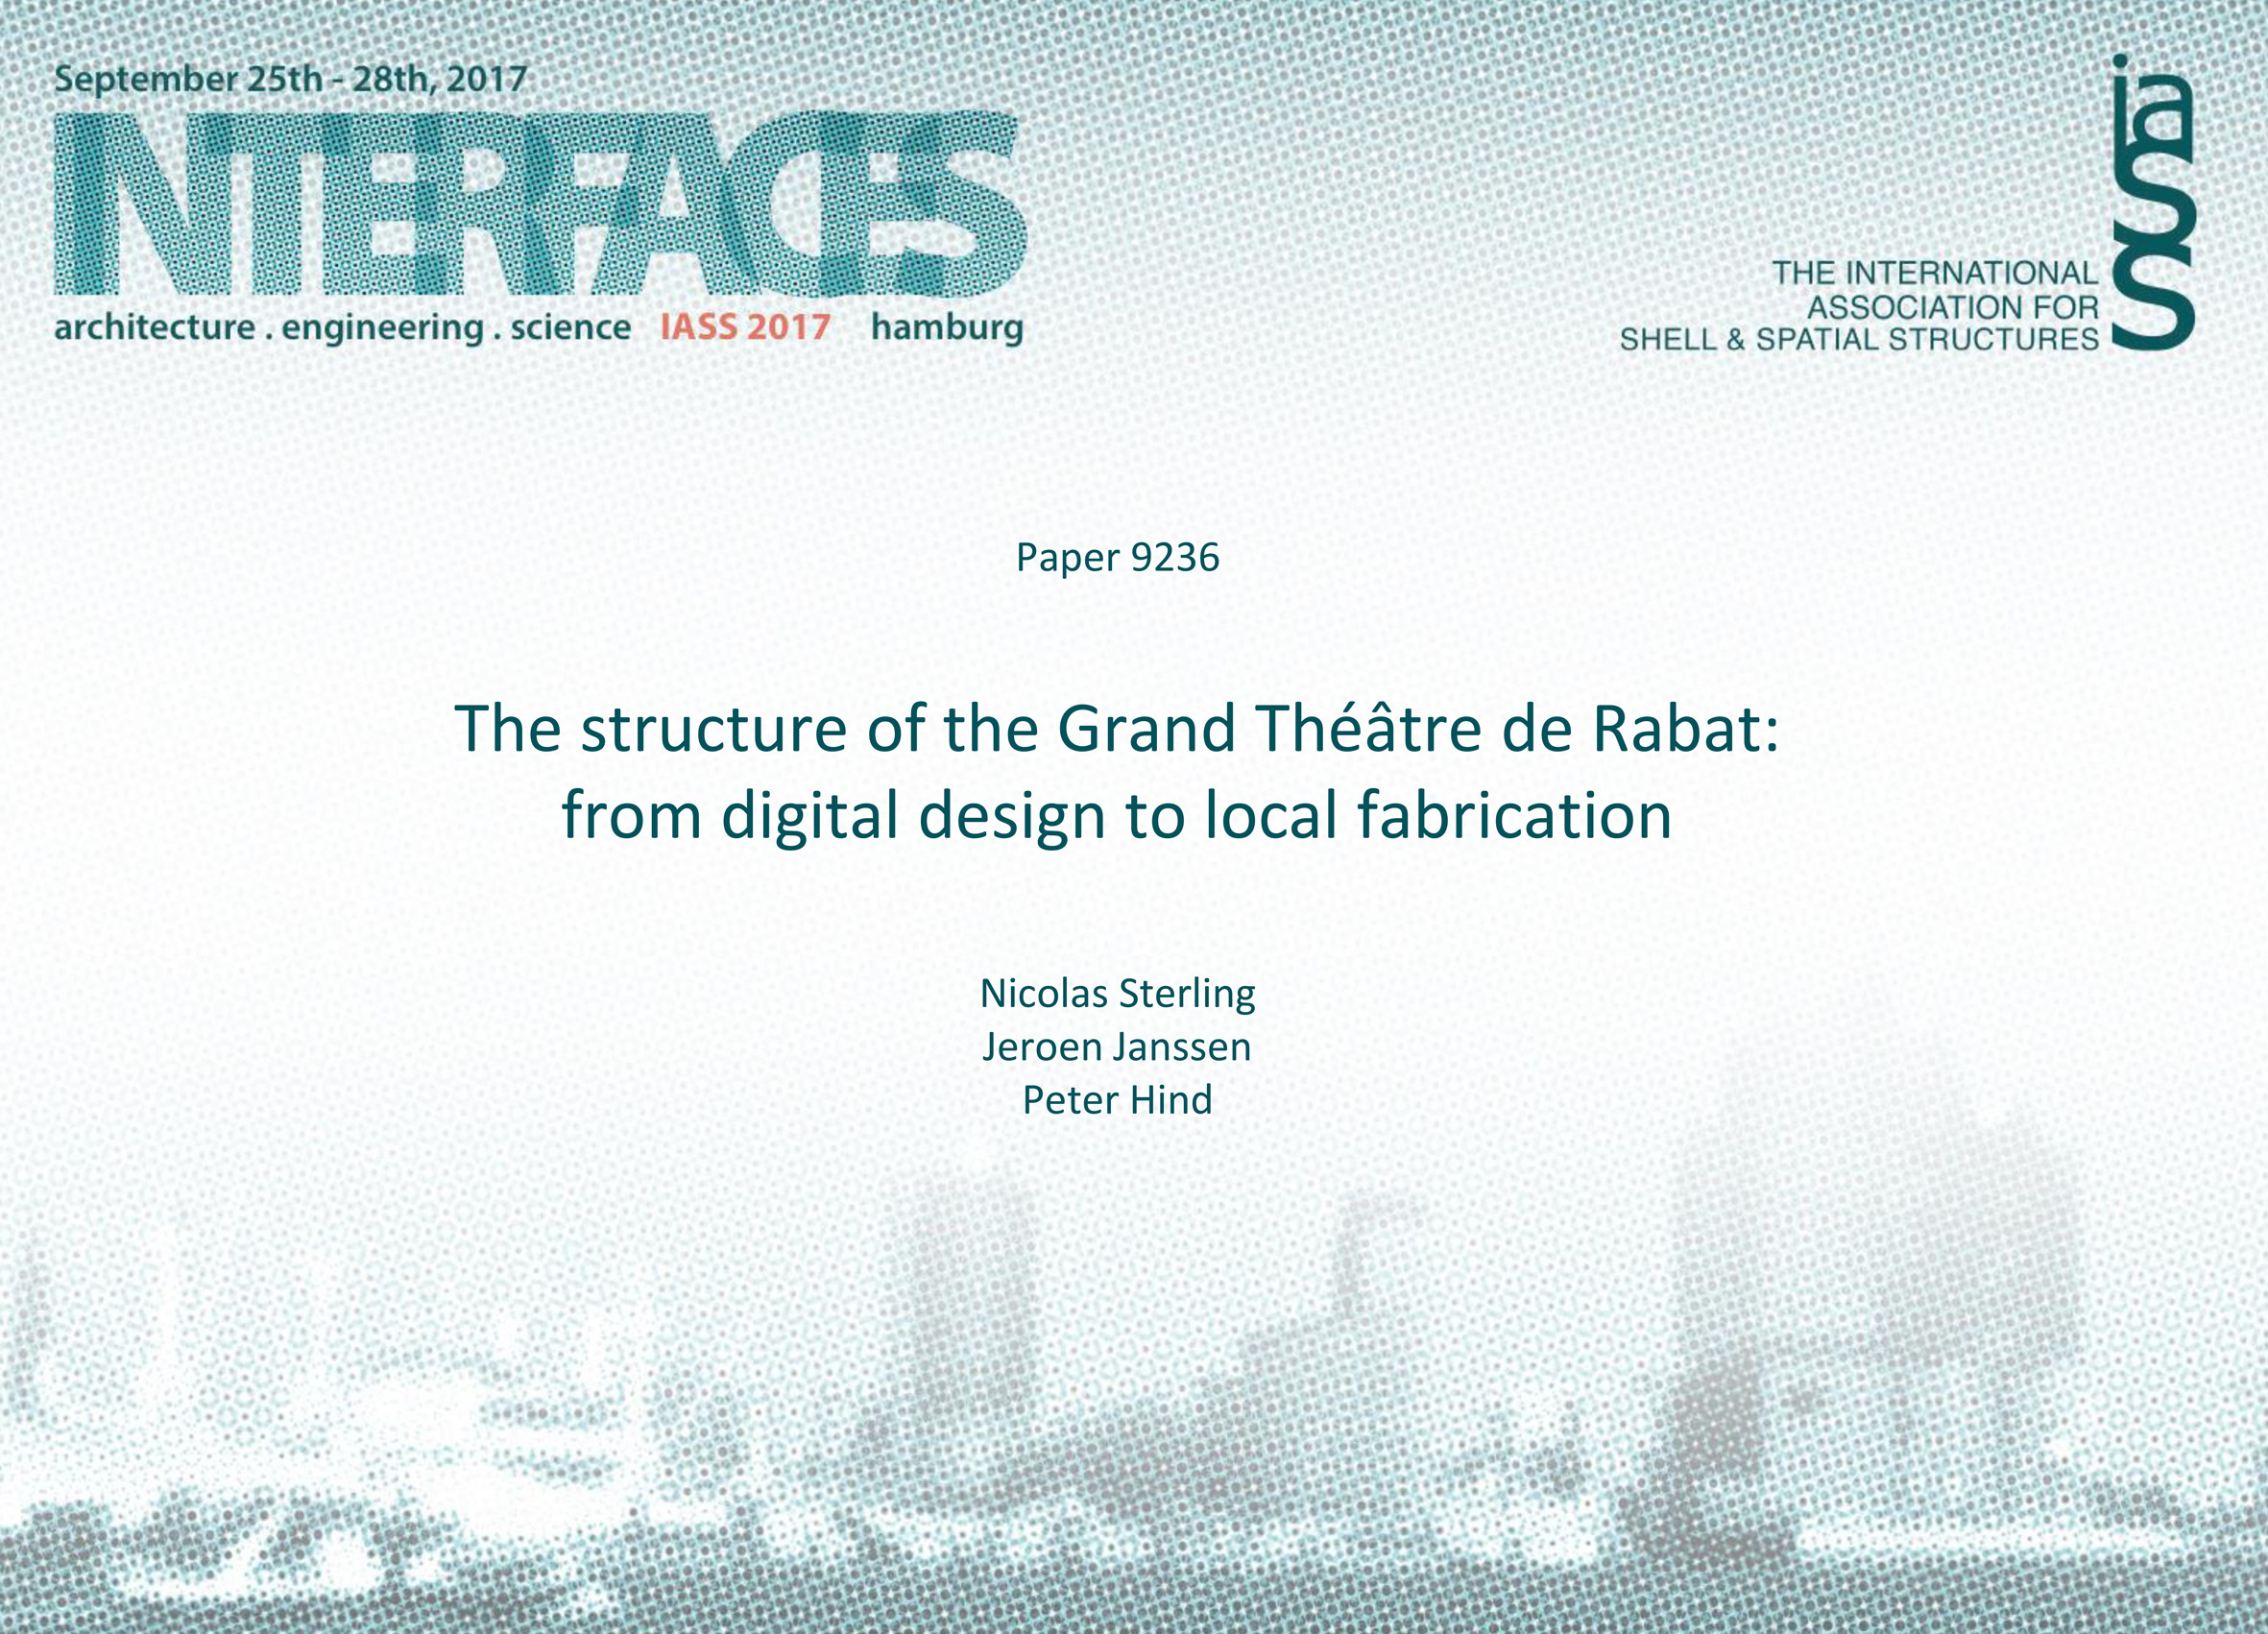 IASS 2017 Hamburg - Interfaces - The structure of the Grand Théâtre de Rabat @ AKTII from digital design to local fabrication - Presentation Nicolas Sterling, Jeroen Janssen